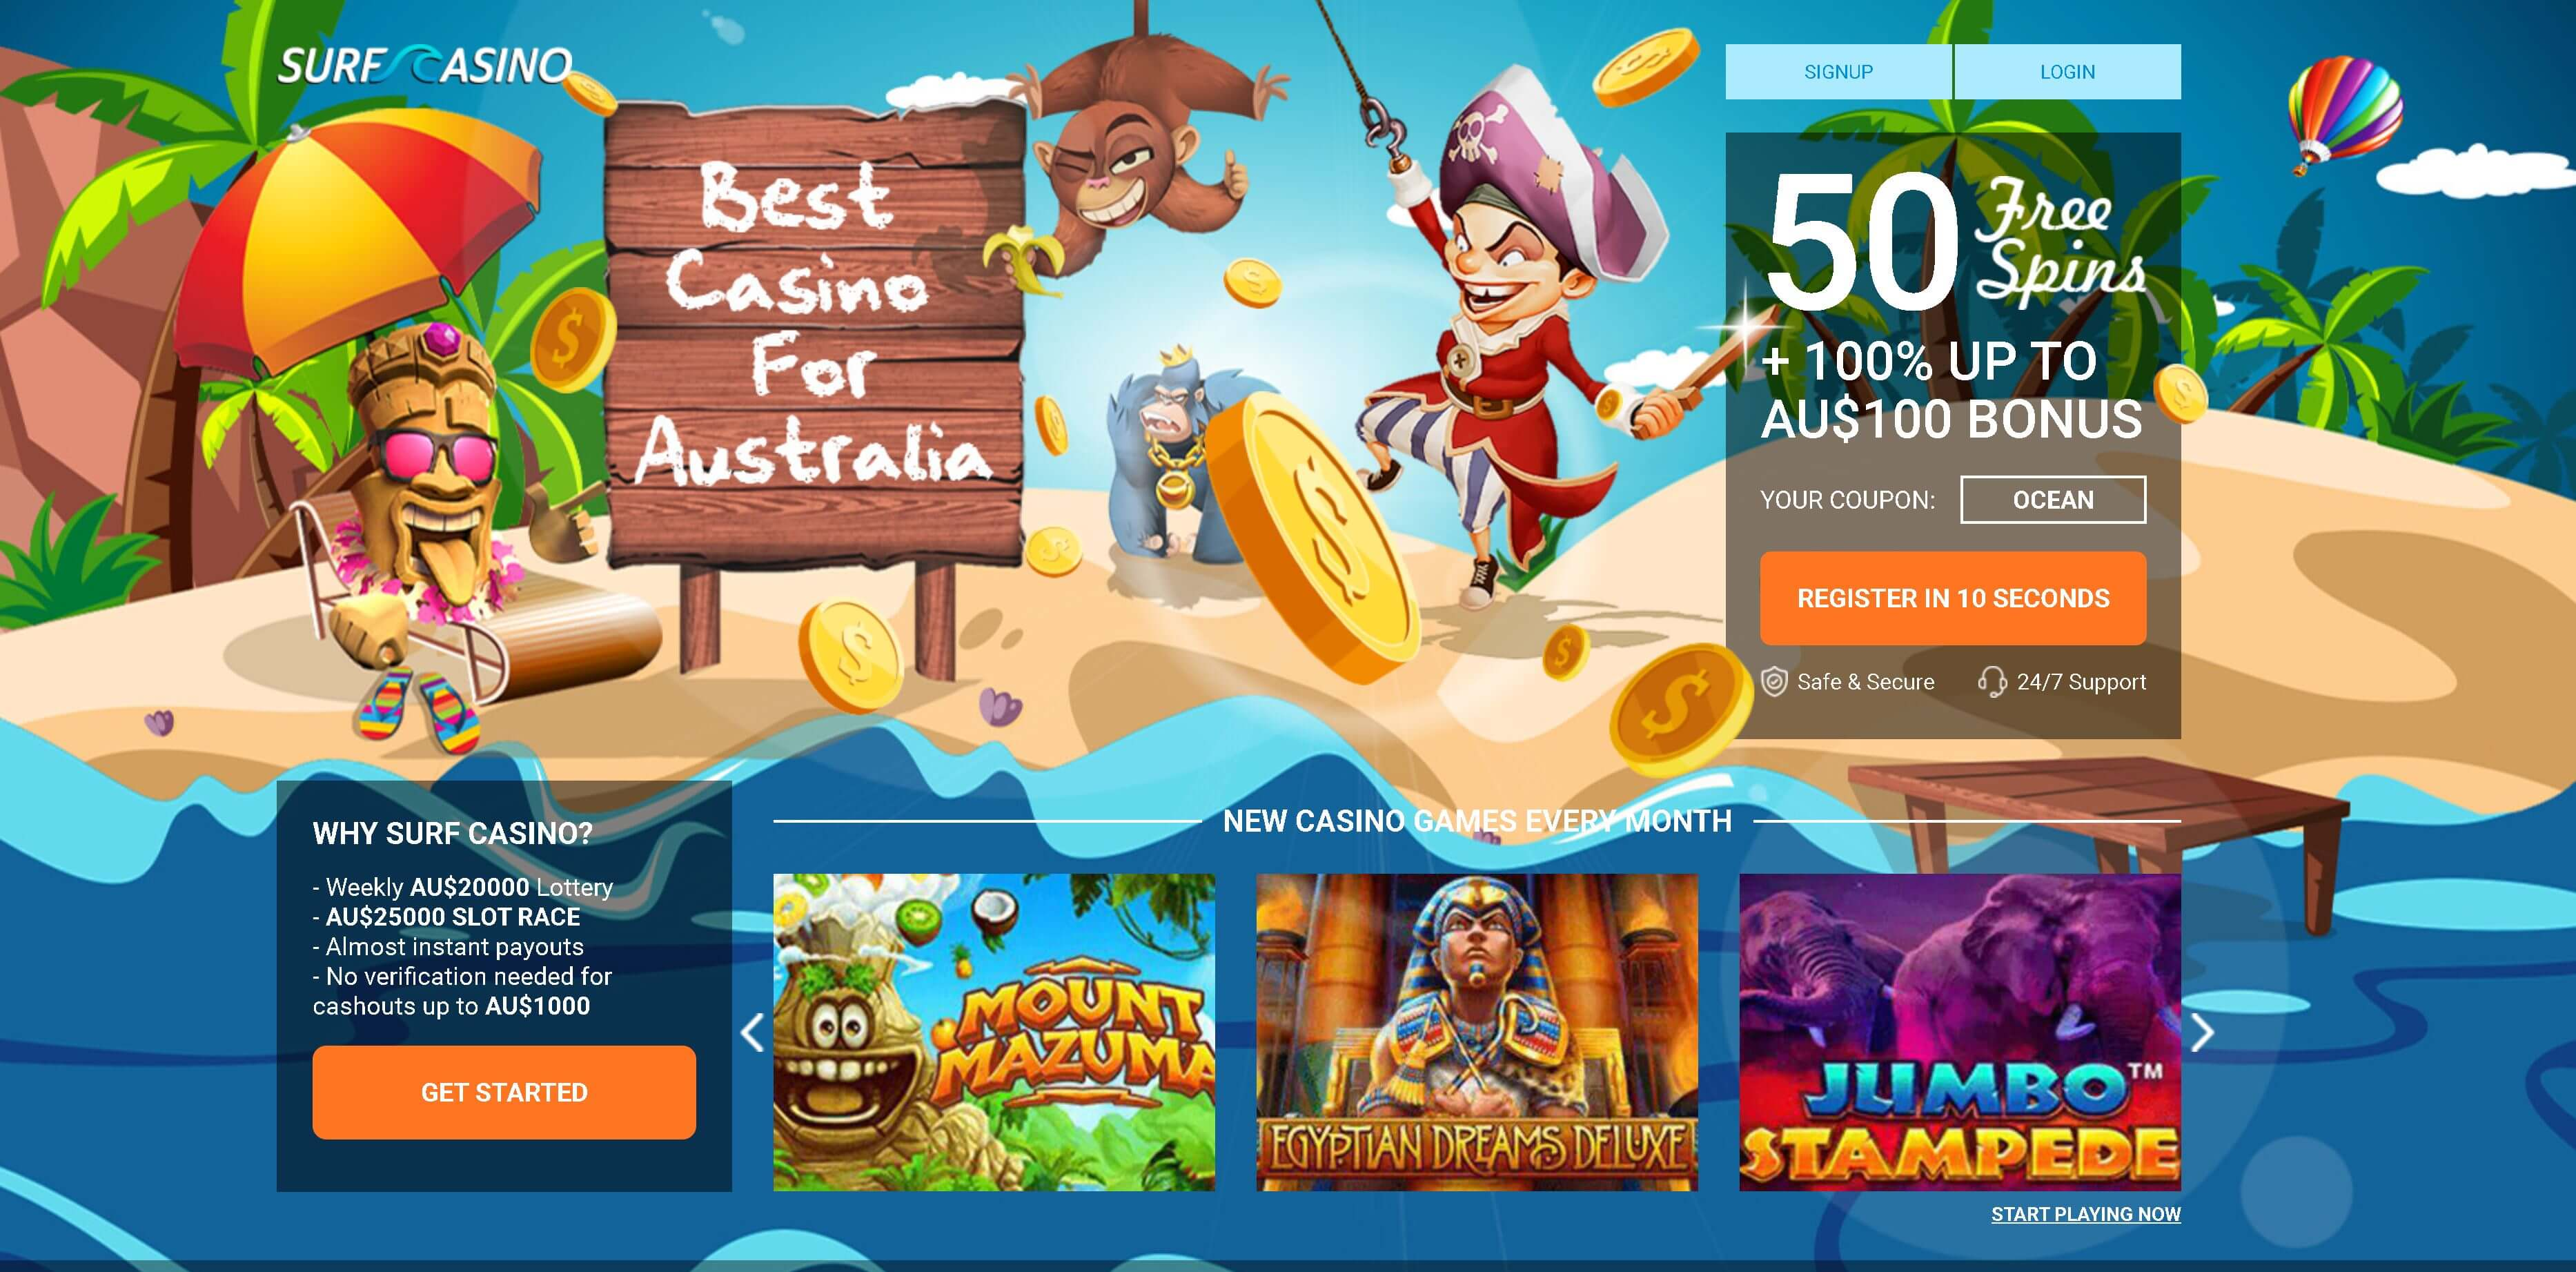 Surf Online Casino review